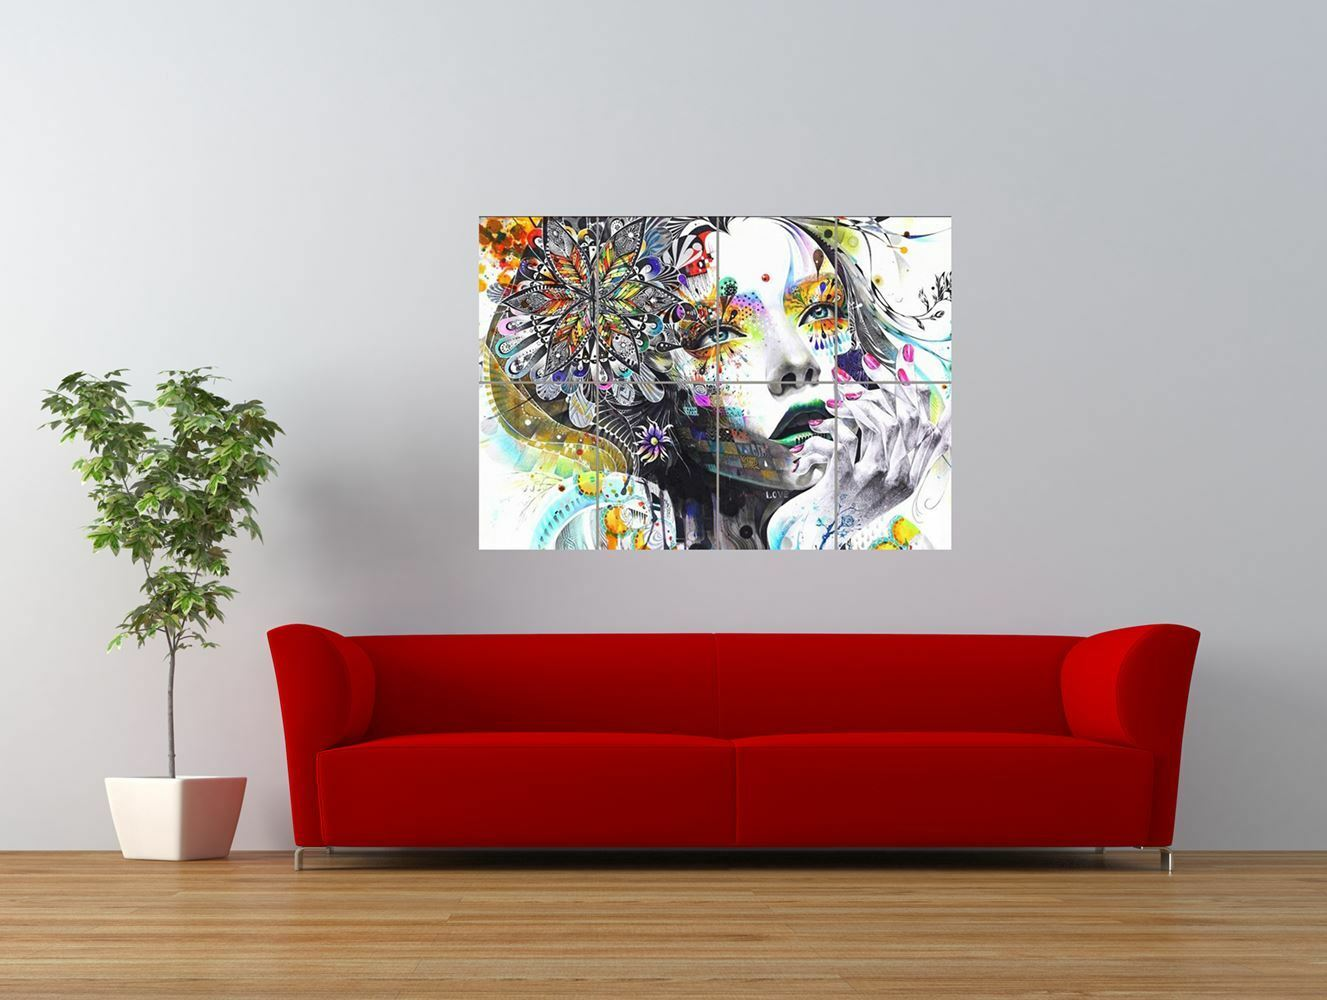 painting psychedelic girl street graffiti giant art print panel poster nor0307 eur 11 09. Black Bedroom Furniture Sets. Home Design Ideas